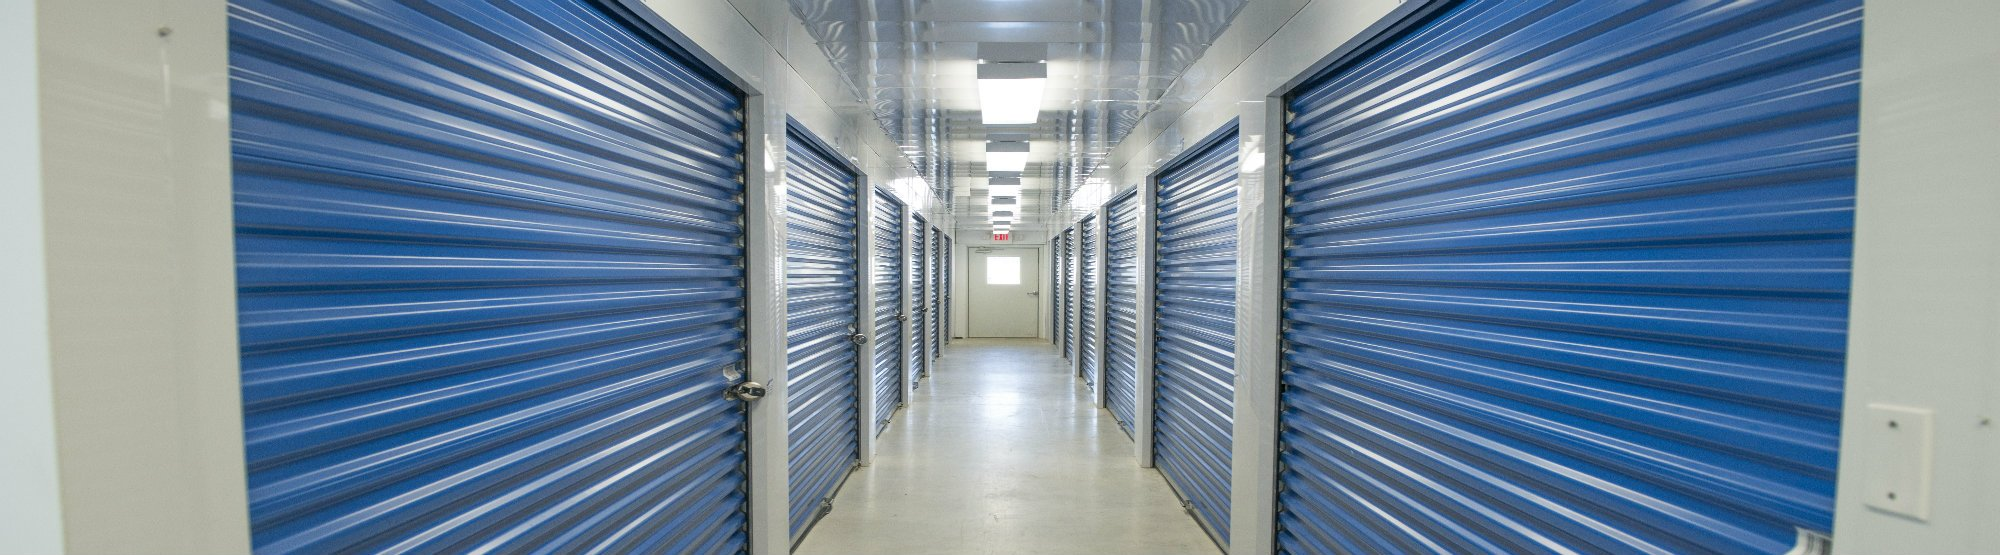 Storage Express in  Illinois, Indiana, Ohio, Kentucky, and Tennessee